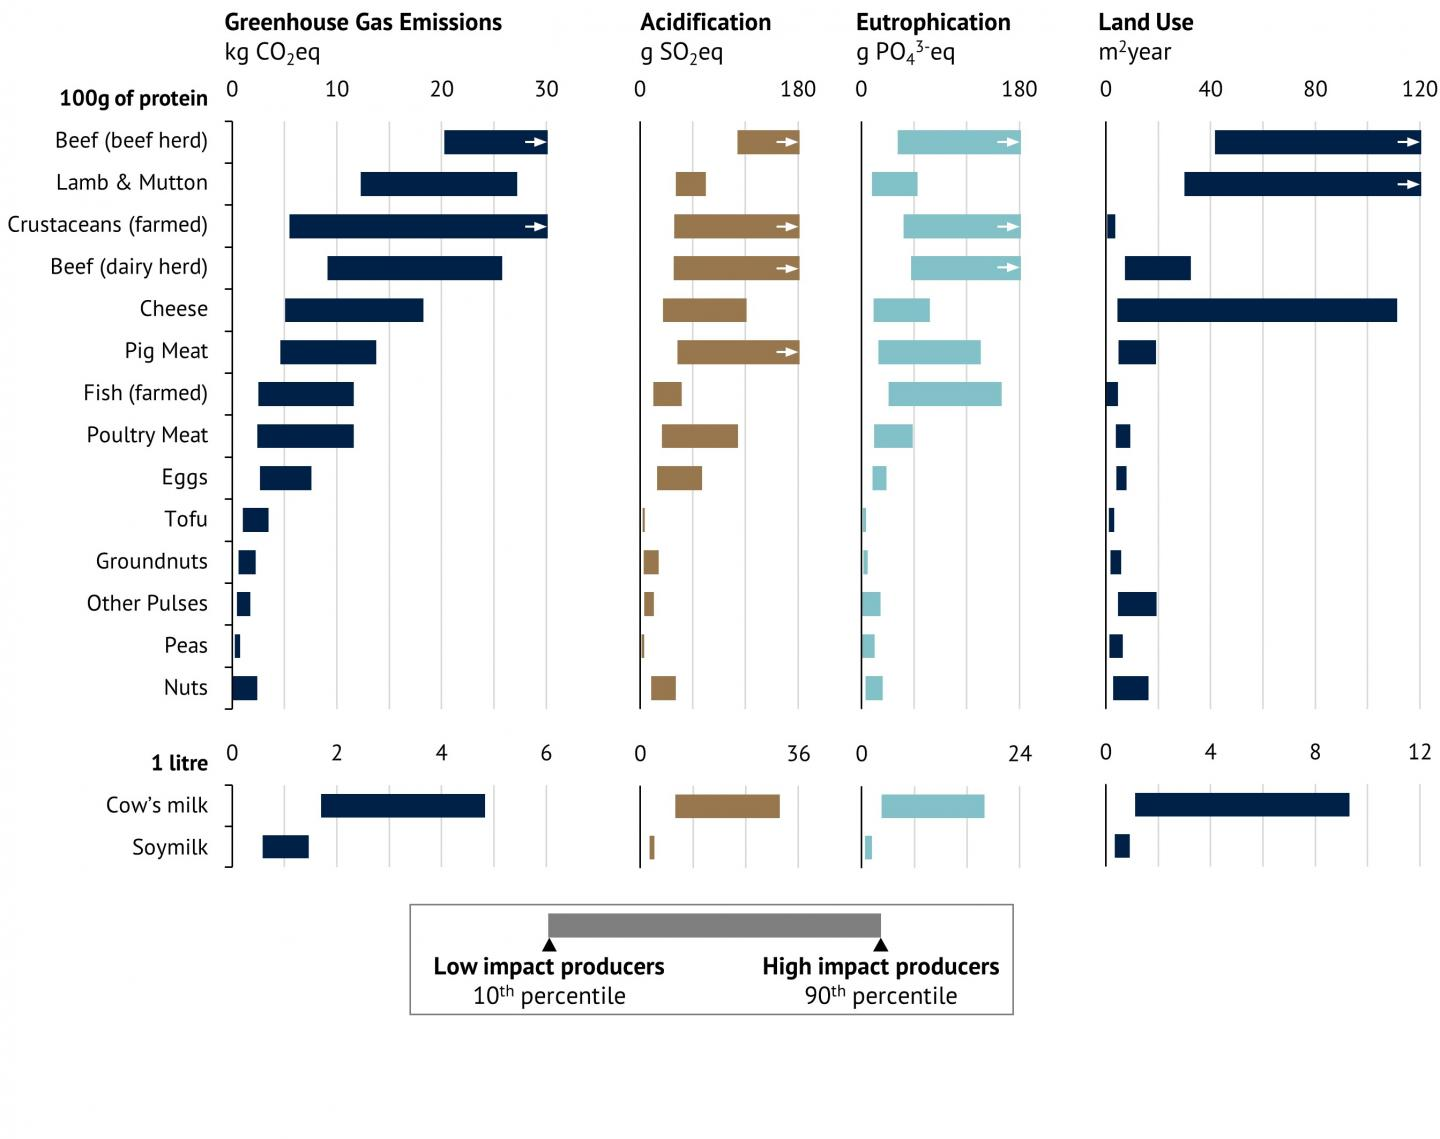 Environmental Impacts of Protein-Rich Products and Milk